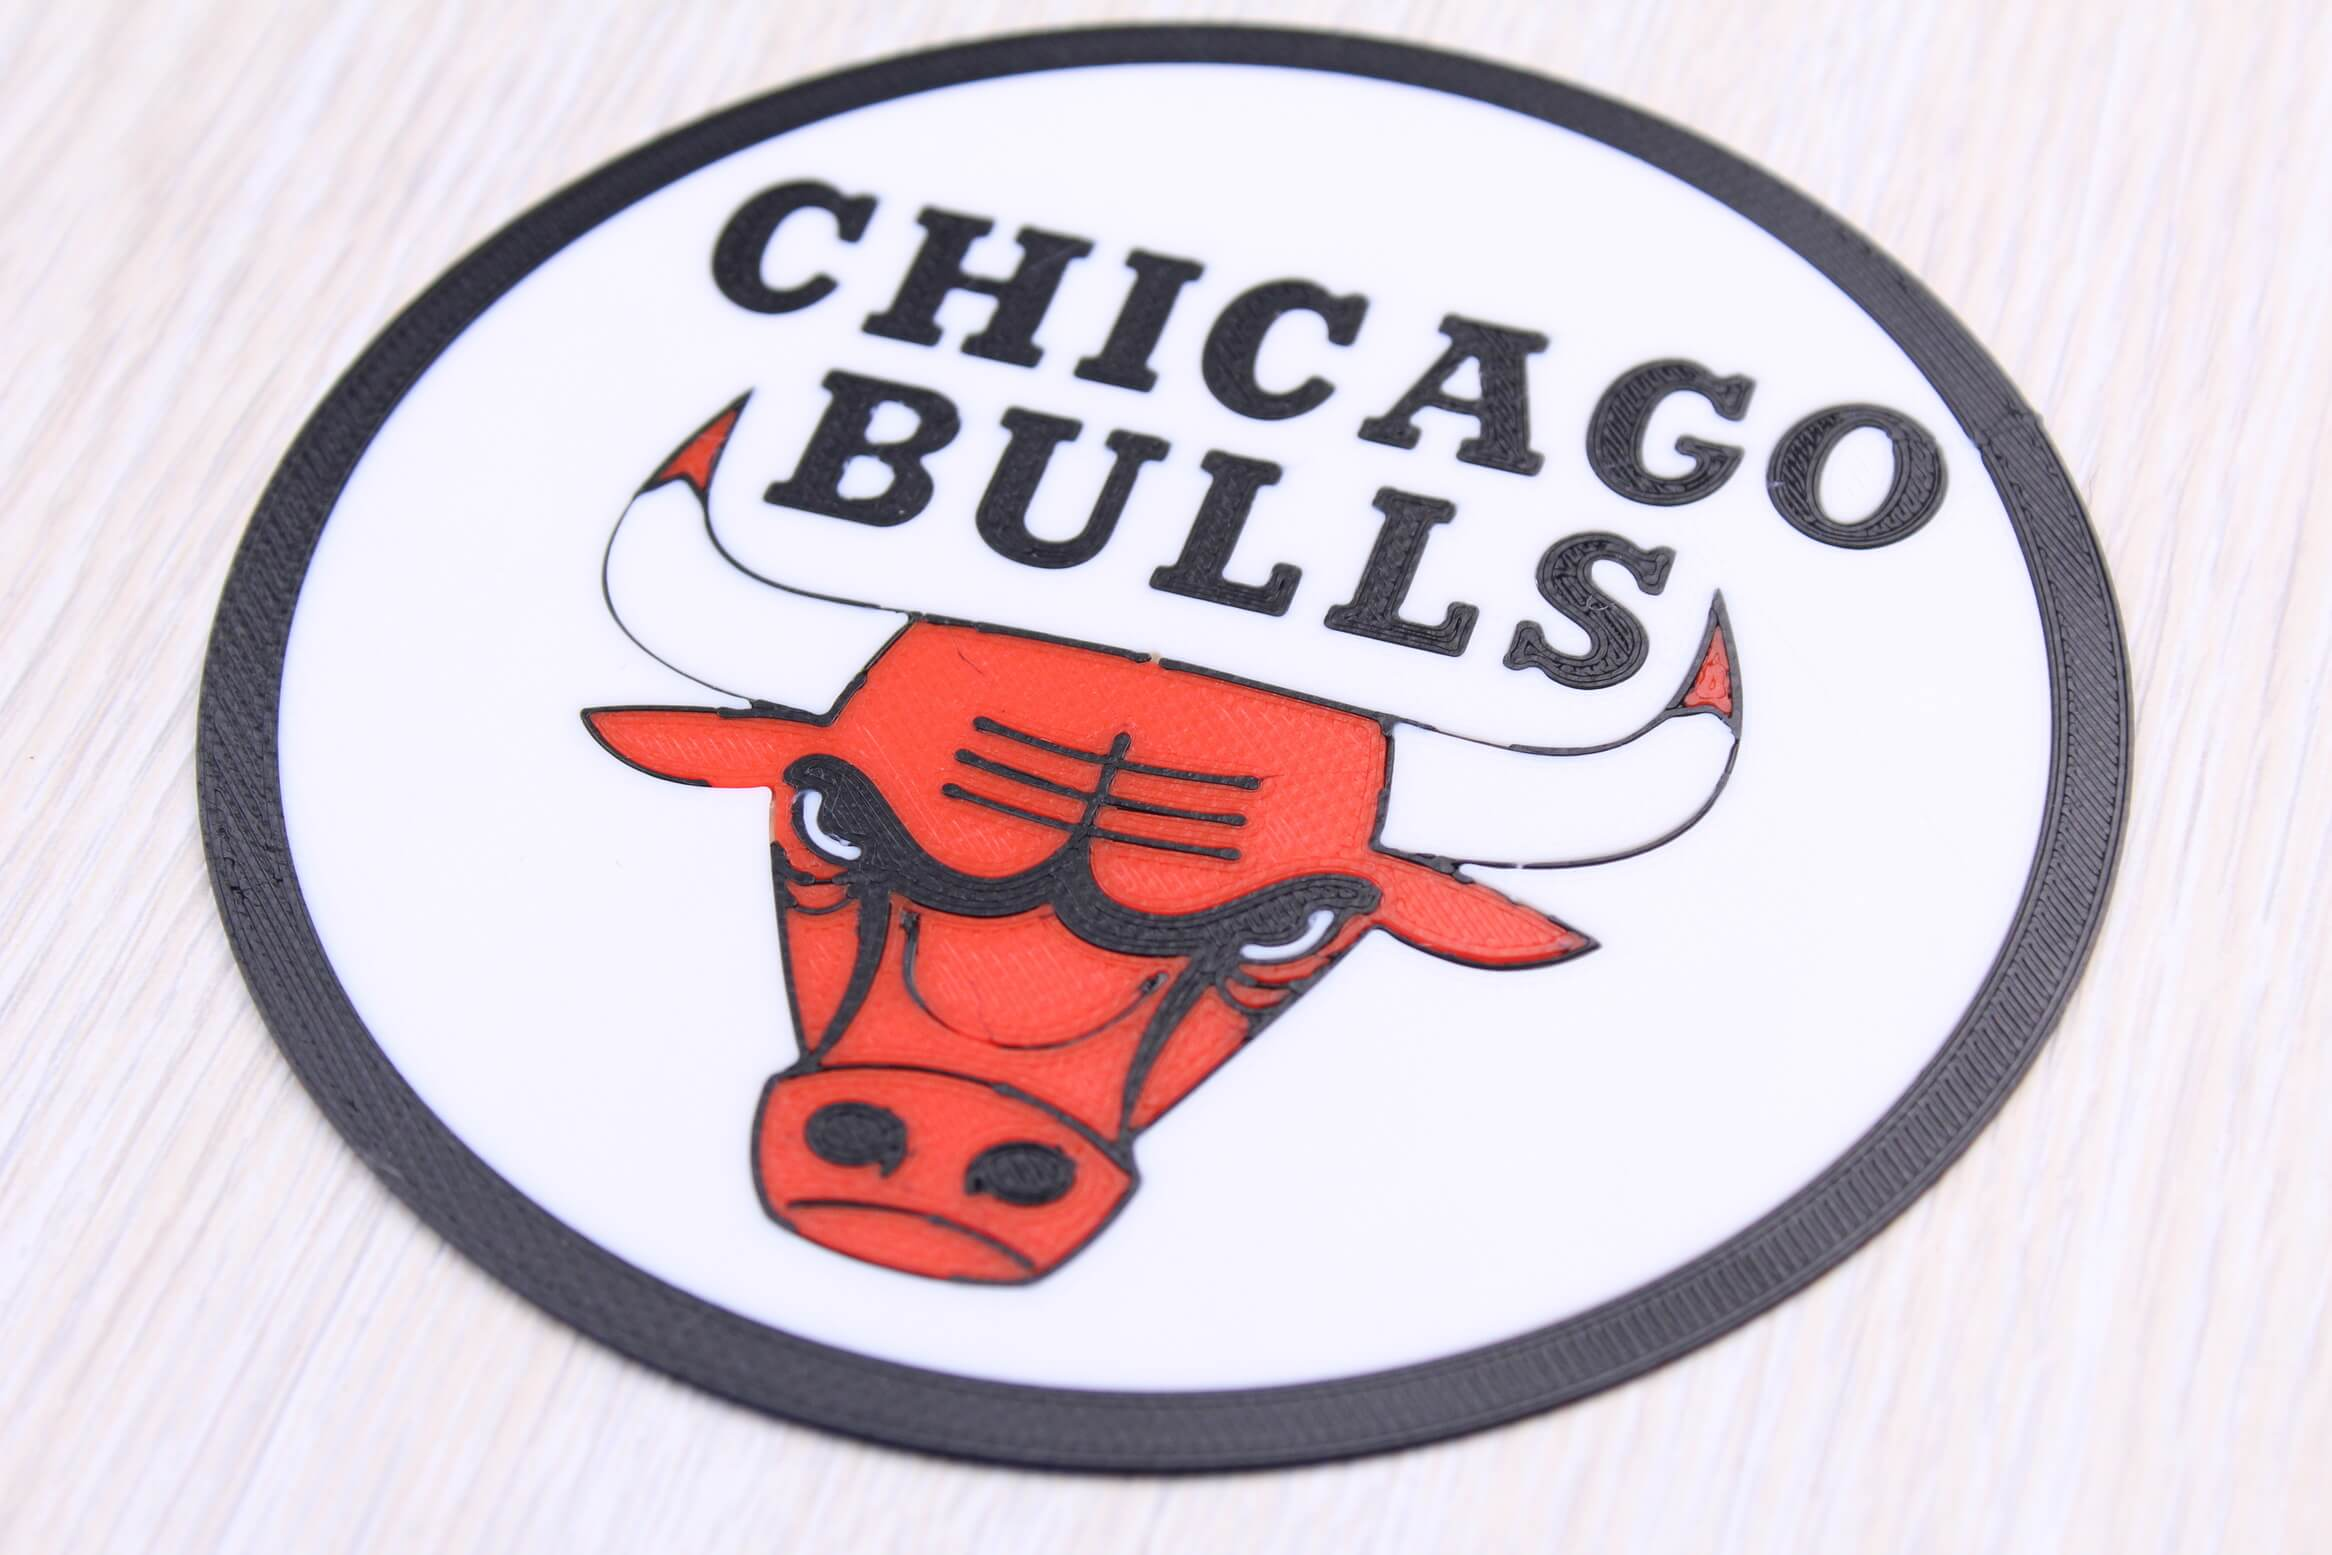 Chicago Bulls sign Multi Color 3D Print 2 | Multi-Color 3D Printing Using IdeaMaker